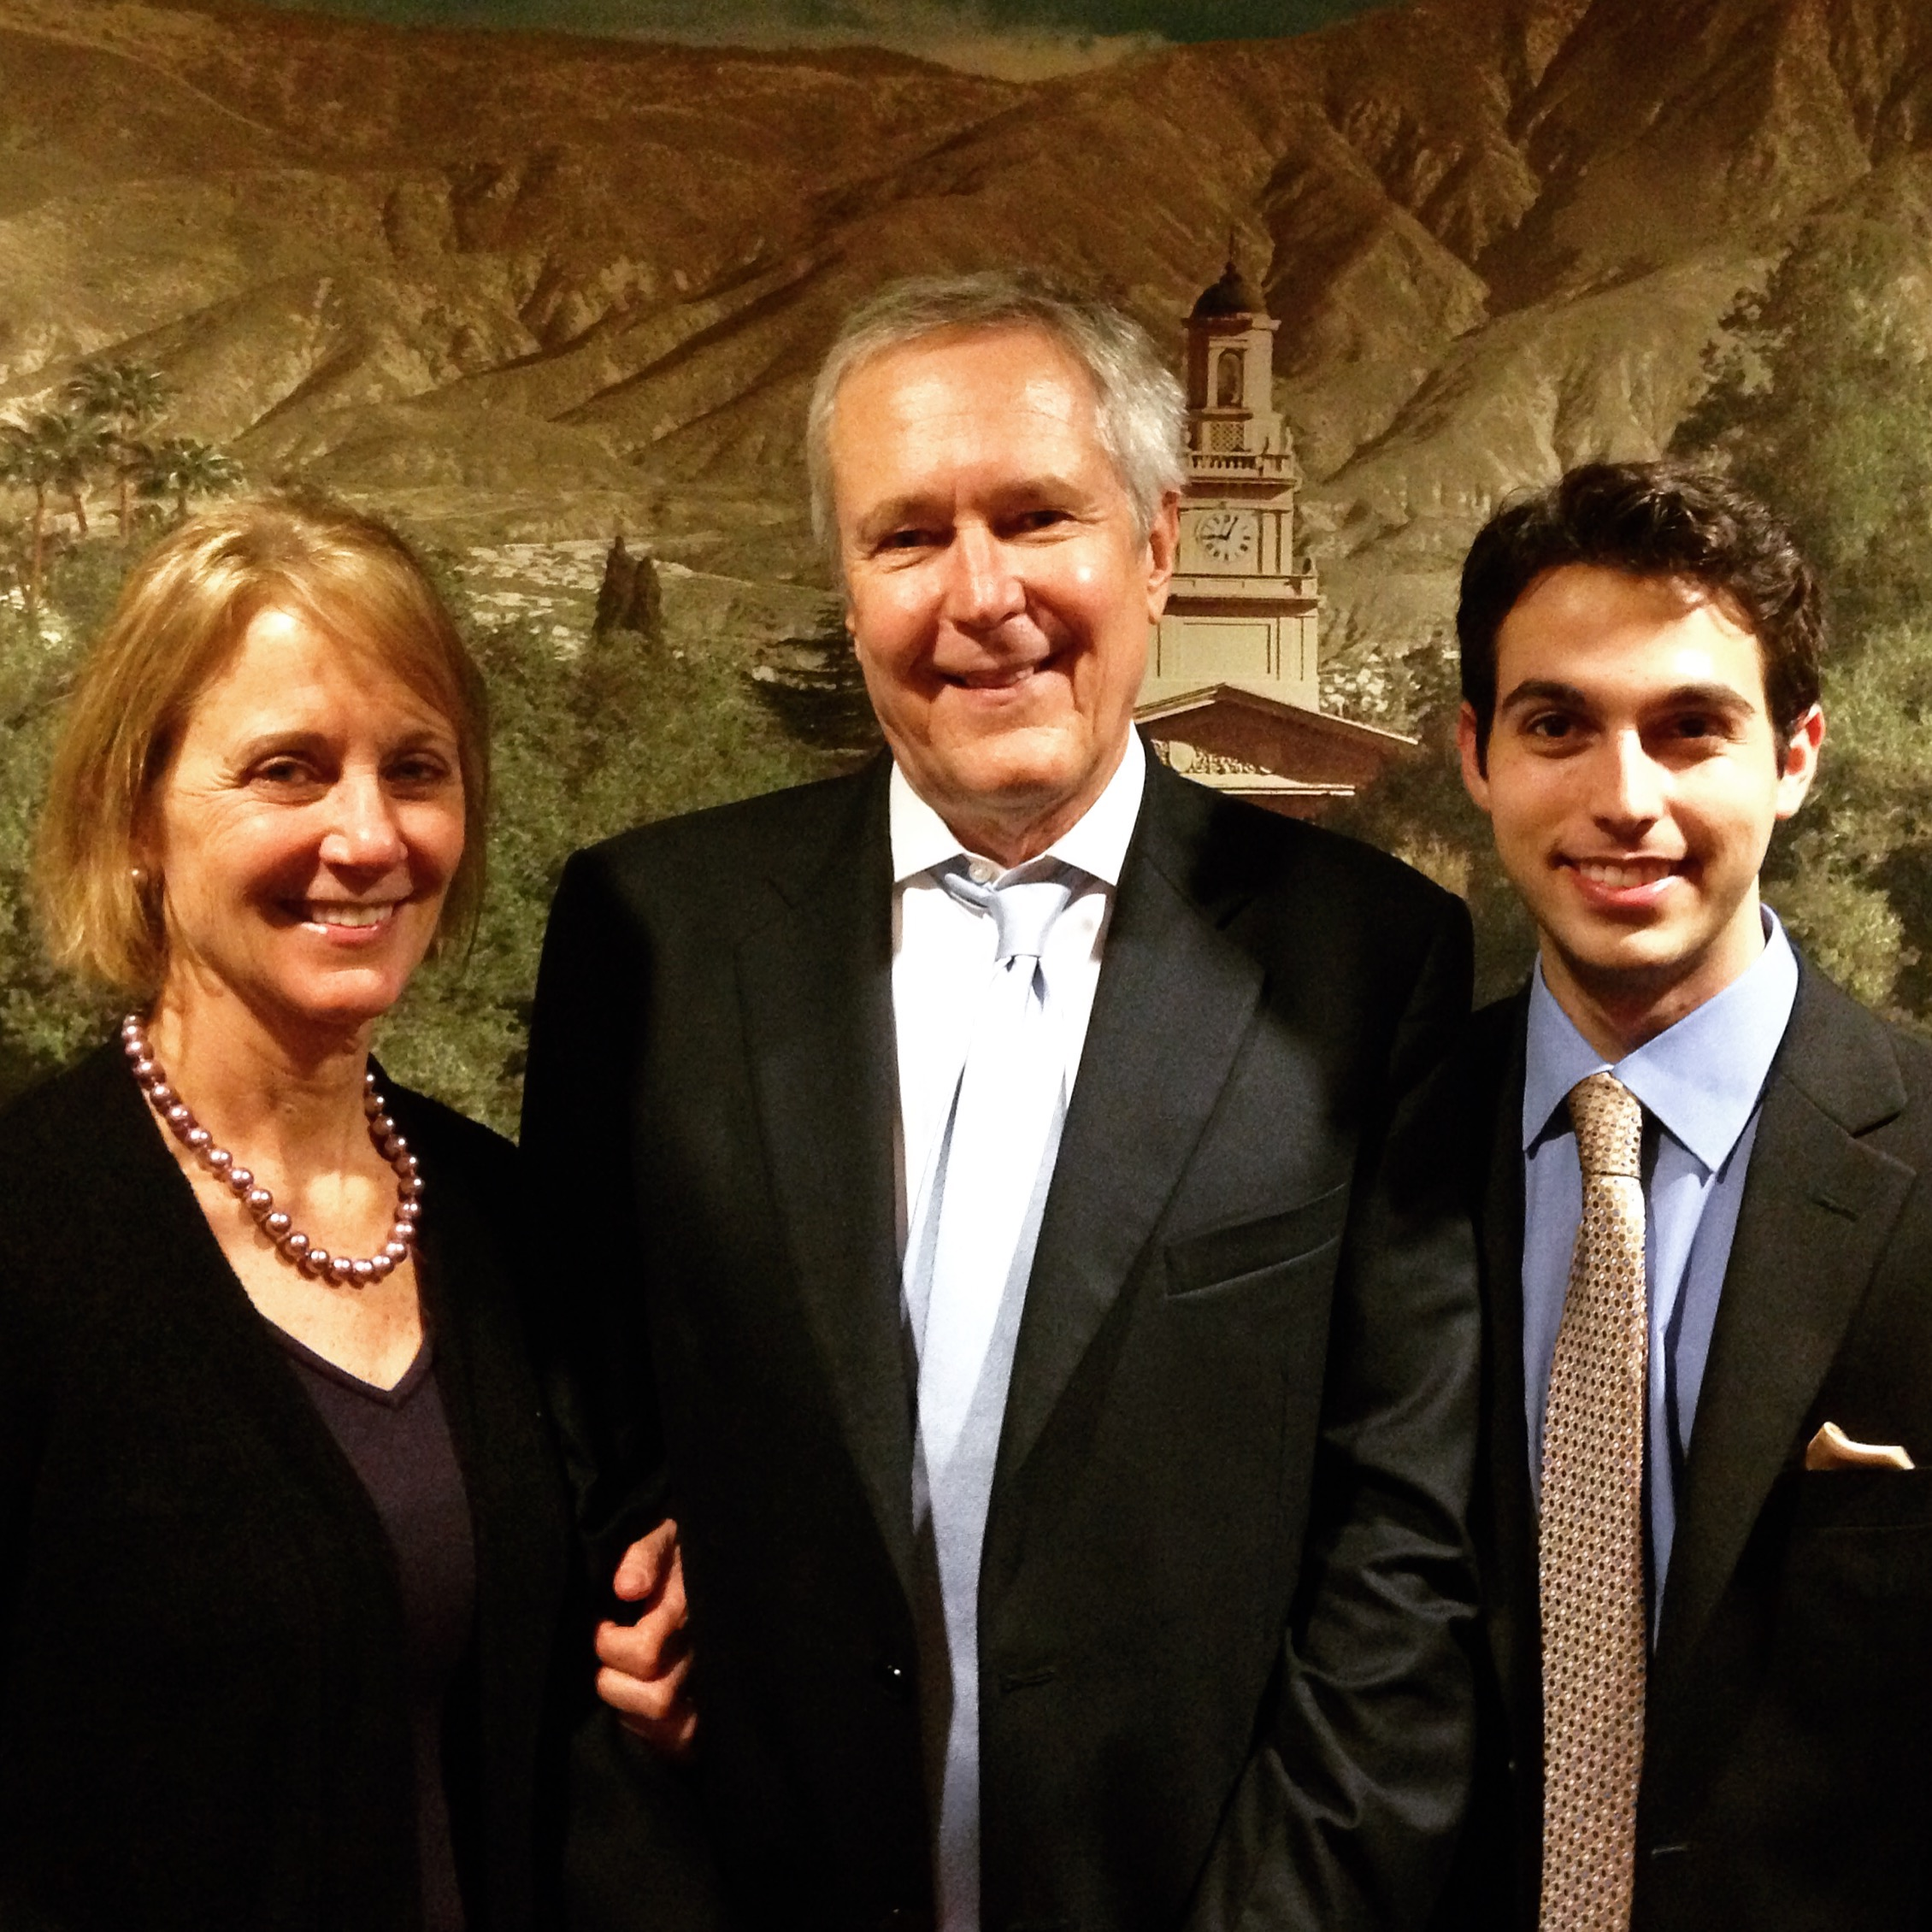 Sanford with Journalists James and Deborah Fallows